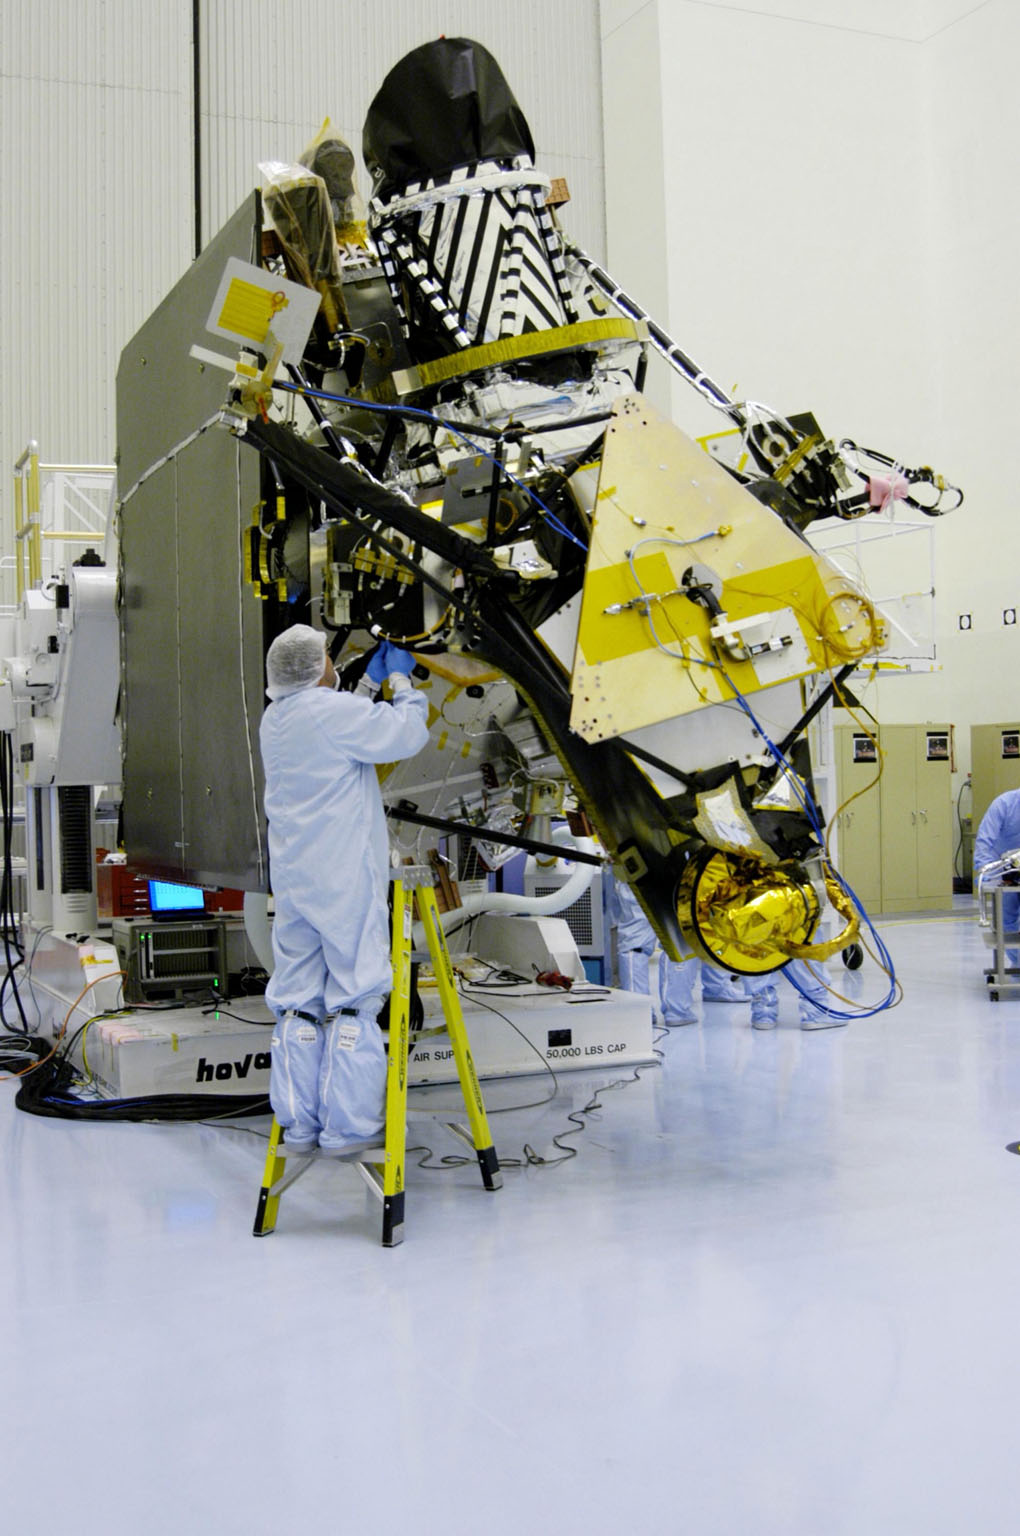 KENNEDY SPACE CENTER, FLA. - In the Payload Hazardous Servicing Facility at NASA?s Kennedy Space Center, an engineer installs a second gimbal on a Mars Reconnaissance Orbiter (MRO) solar panel. A gimbal is an appliance that allows an object to remain horizontal even as its support tips. In the PHSF, the spacecraft will undergo multiple mechanical assembly operations and electrical tests to verify its readiness for launch. A major deployment test will check out the spacecraft?s large solar arrays. The MRO was built by Lockheed Martin for NASA?s Jet Propulsion Laboratory in California. It is the next major step in Mars exploration and scheduled for launch from Cape Canaveral Air Force Station in a window opening Aug. 10. The MRO is an important next step in fulfilling NASA?s vision of space exploration and ultimately sending human explorers to Mars and beyond.